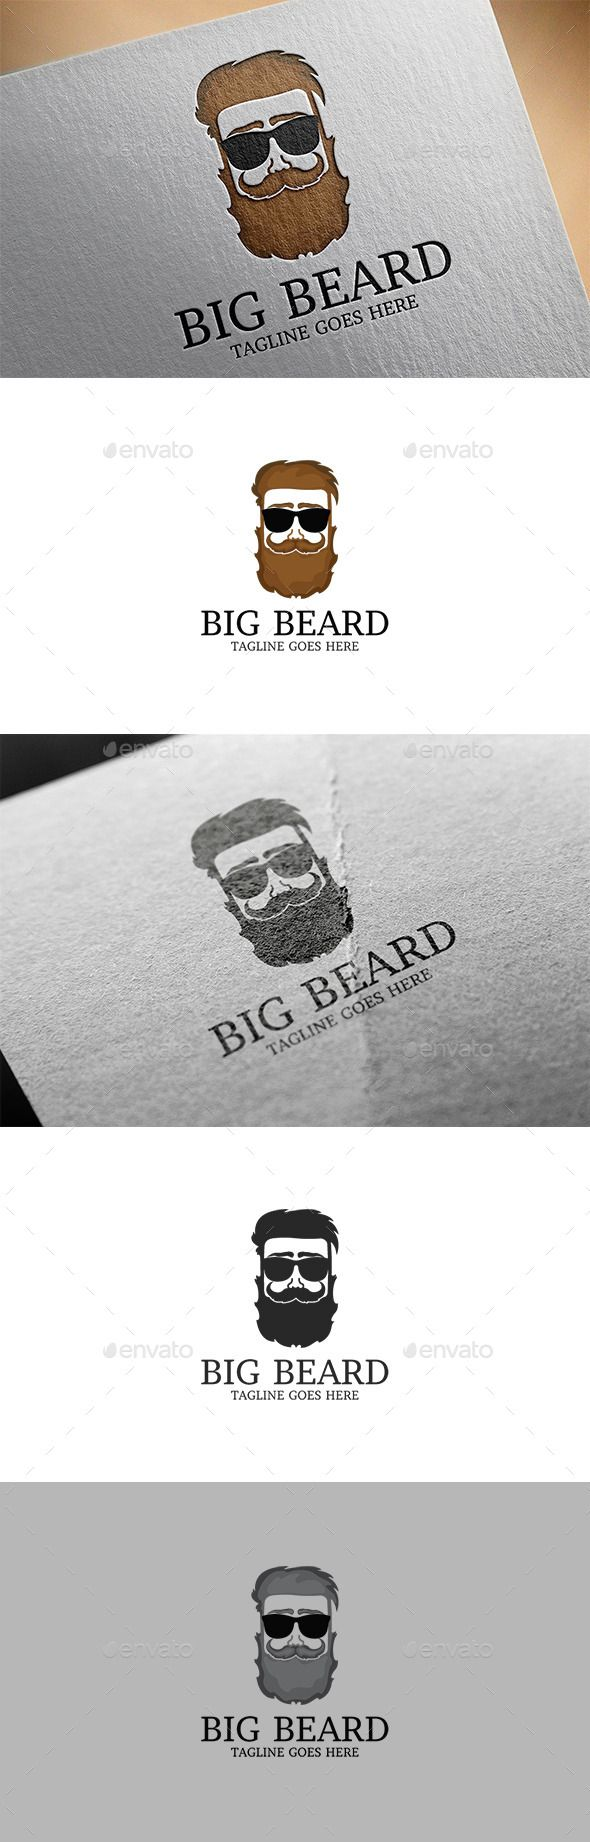 Beard Logo Template Vector EPS, AI. Download here: http://graphicriver.net/item/beard-logo/11933175?ref=ksioks